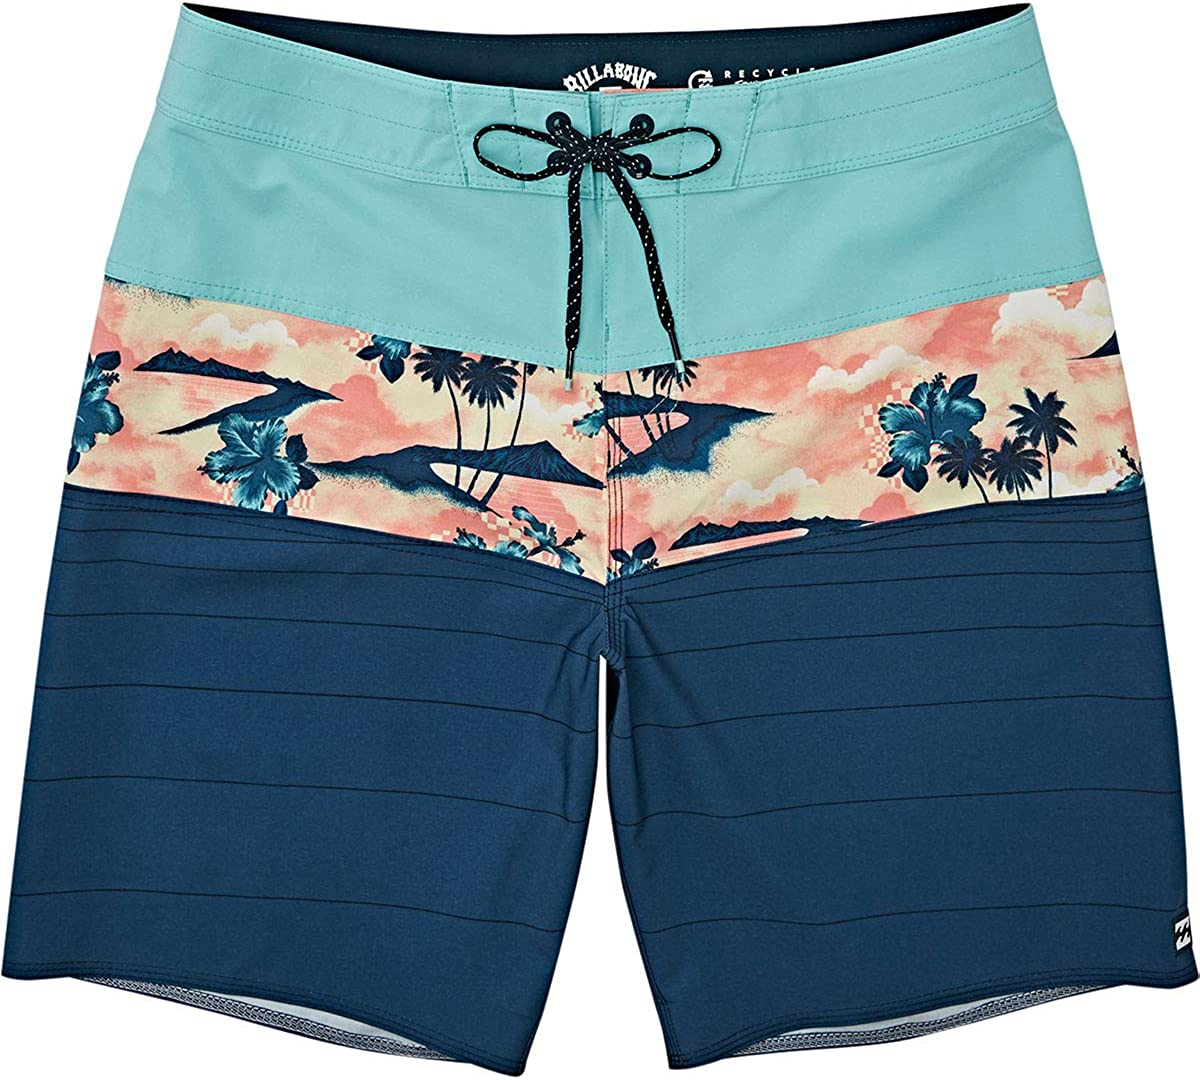 Billabong Boys' Tribong Boardshort Pro We SEAL limited product OFFer at cheap prices